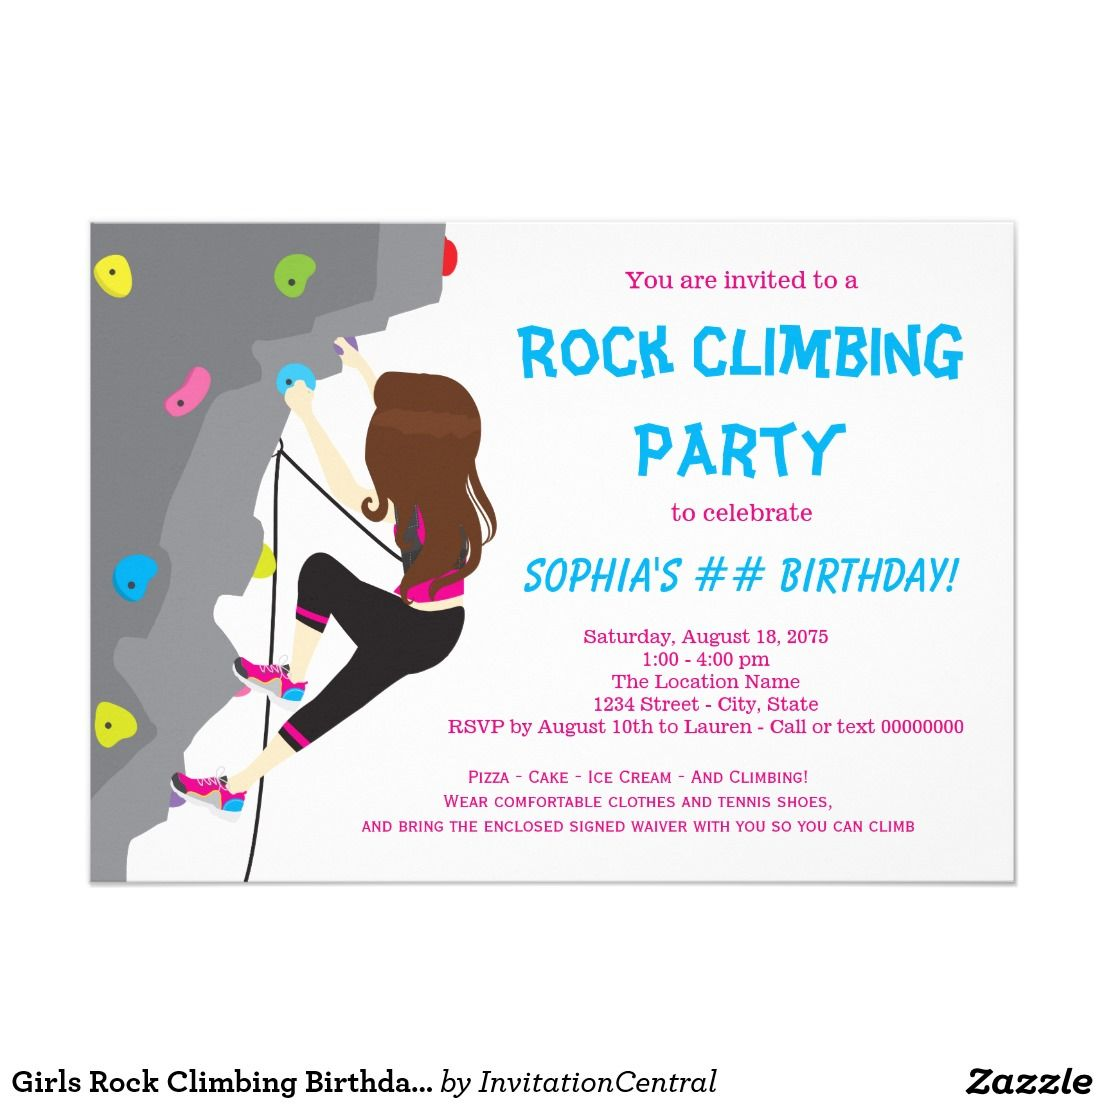 Girls Rock Climbing Birthday Party Invitations · GeburtstagBastelnKlettern  ParteiGeburtstags Party Einladungen11.